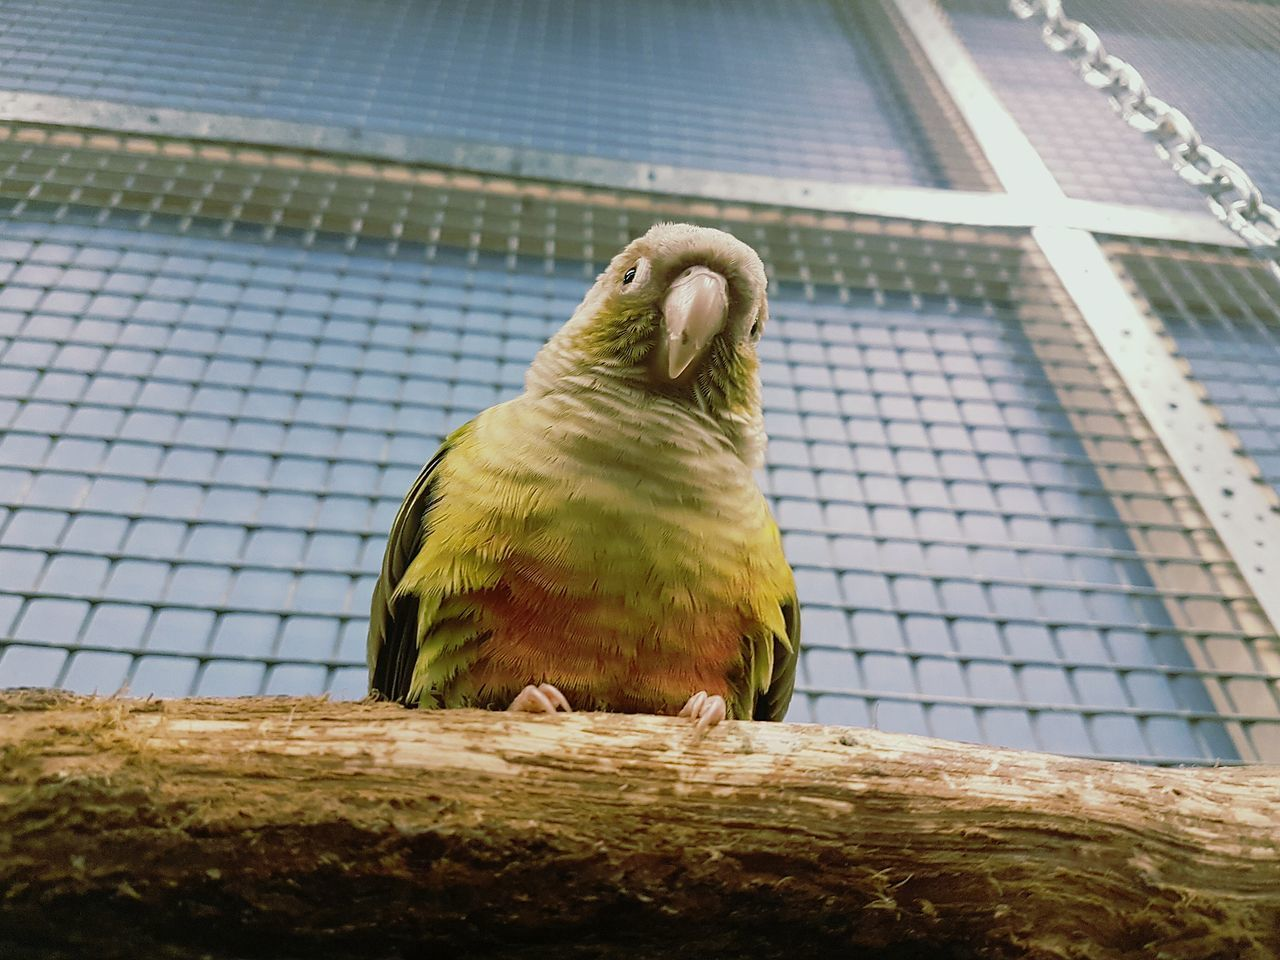 one animal, bird, animal themes, perching, animal wildlife, animals in the wild, parrot, day, no people, cage, budgerigar, low angle view, outdoors, nature, close-up, pets